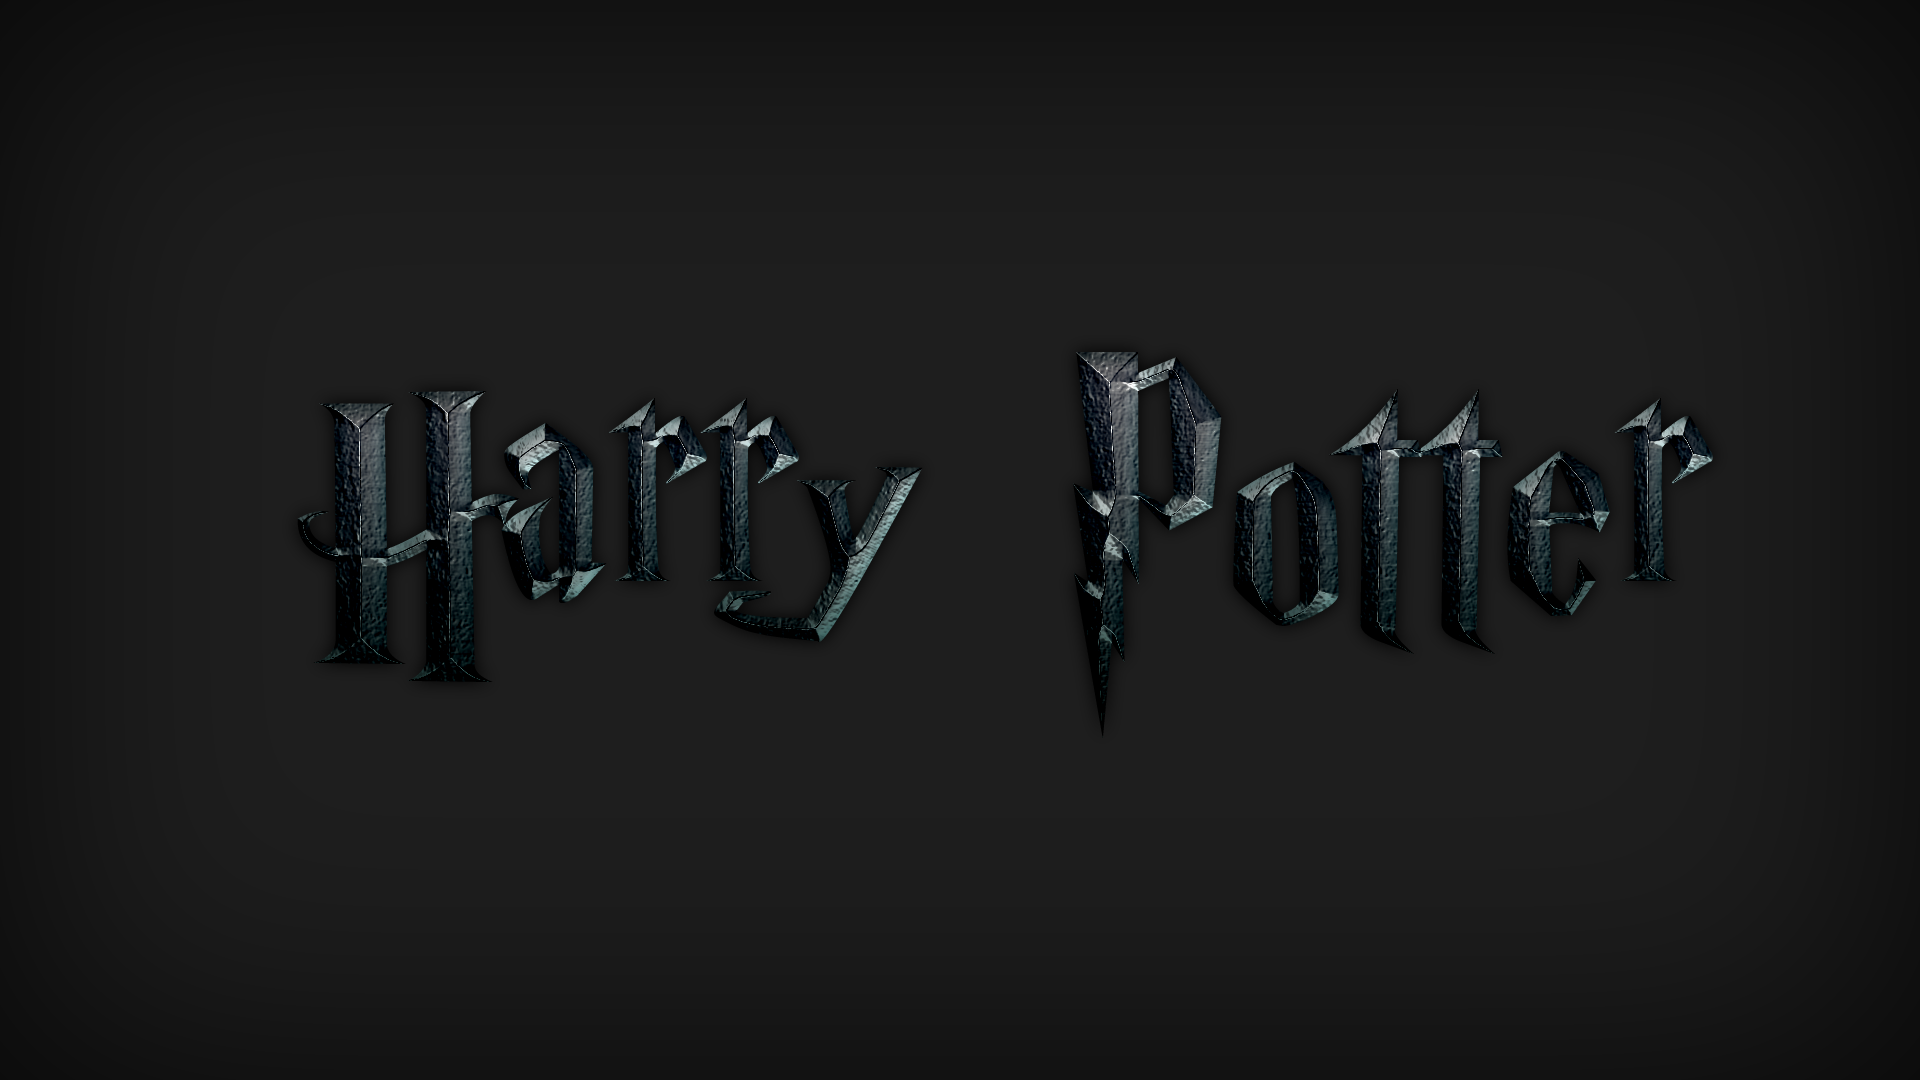 Must see Wallpaper Harry Potter Logo - harry_potter_logo_by_theblazia-d5iwizf  Image_267178.png